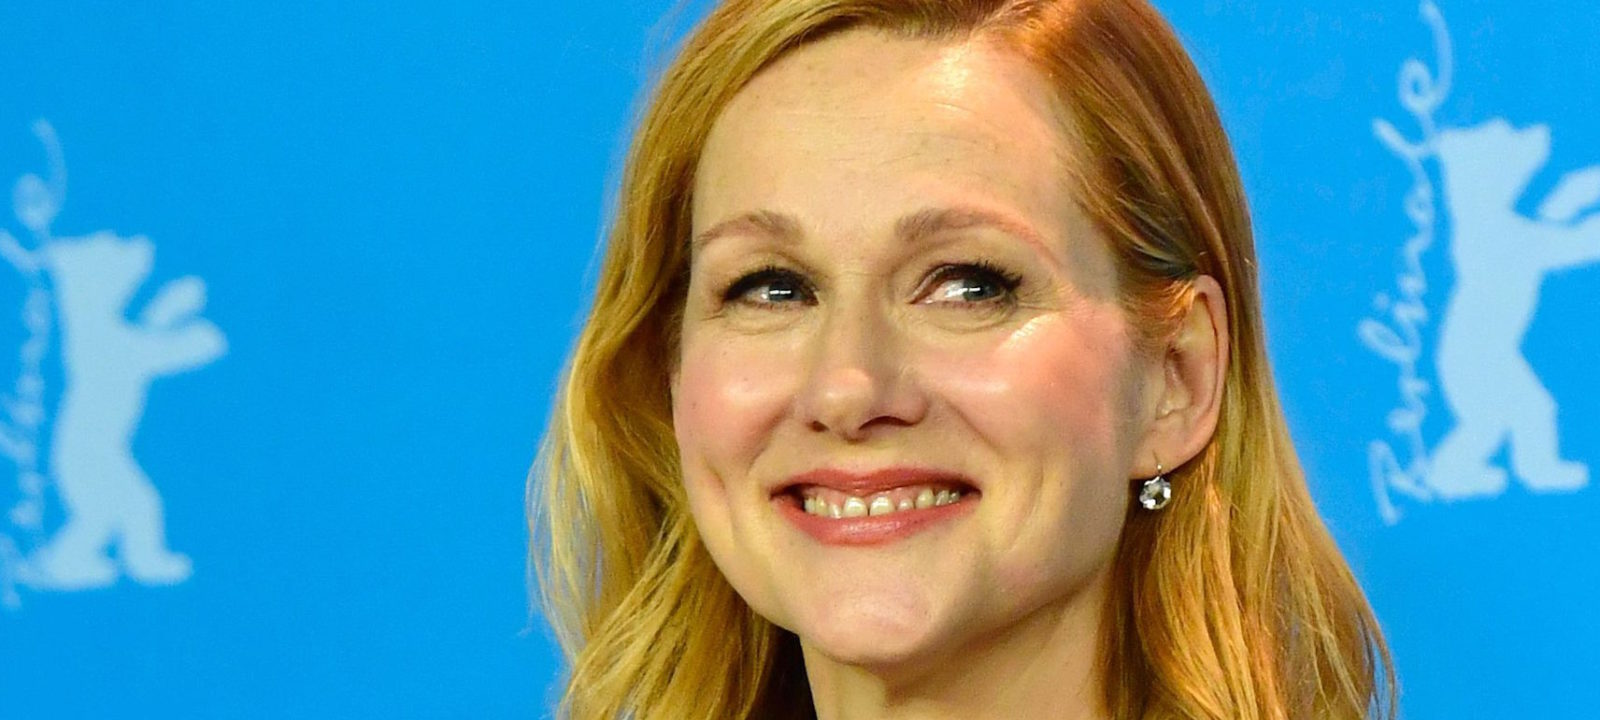 "US actress Laura Linney poses for photographers during a photocall for the film ""The Dinner"" in competition at the 67th Berlinale film festival in Berlin on February 10, 2017. / AFP / John MACDOUGALL"